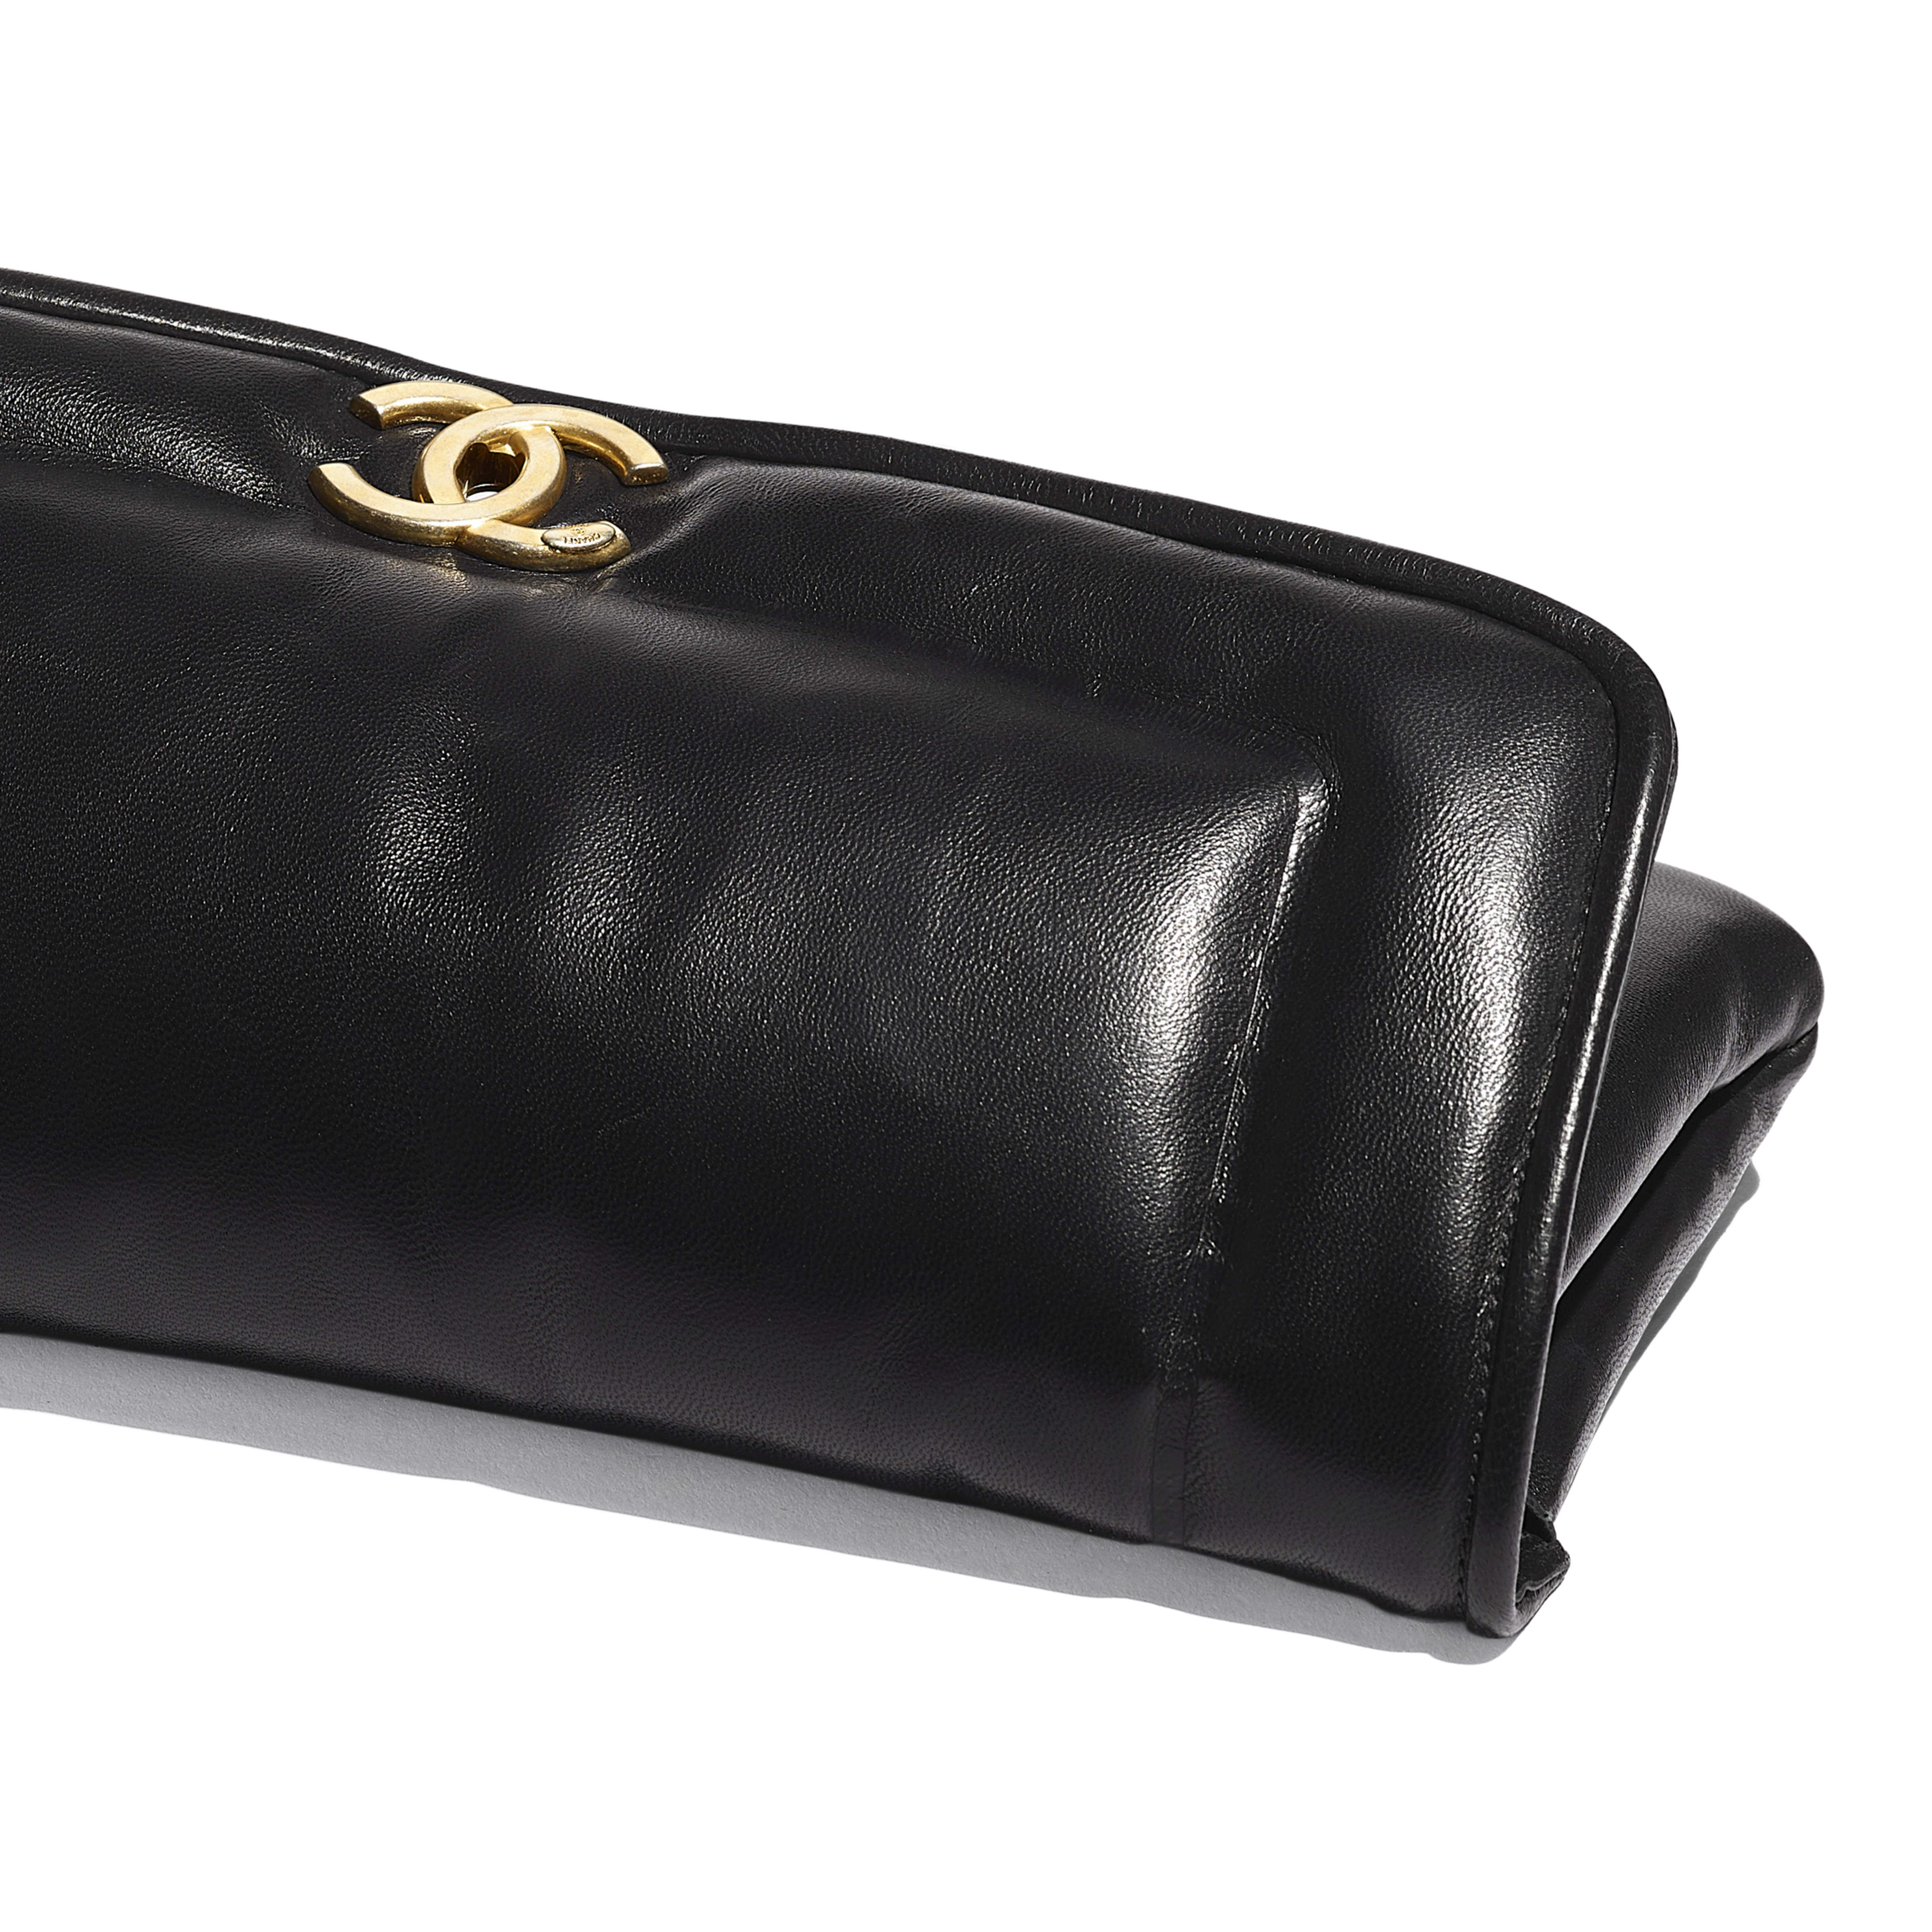 Clutch - Black - Lambskin & Gold-Tone Metal - Extra view - see full sized version